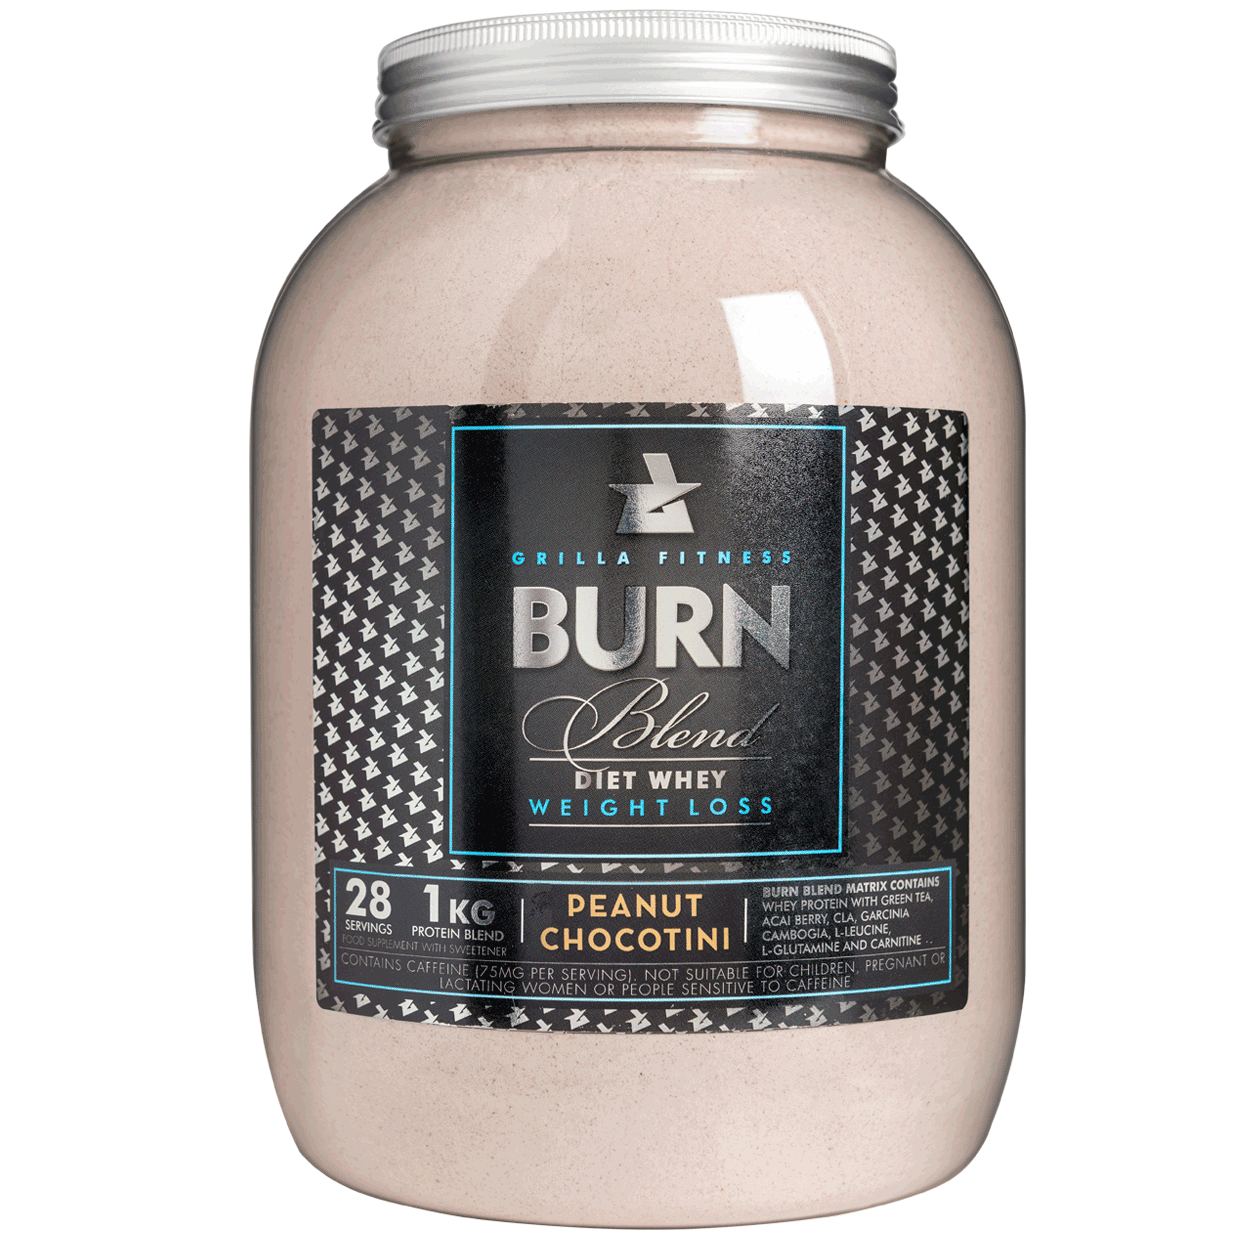 Burn Blend Diet Protein Shake Peanut Chocotini